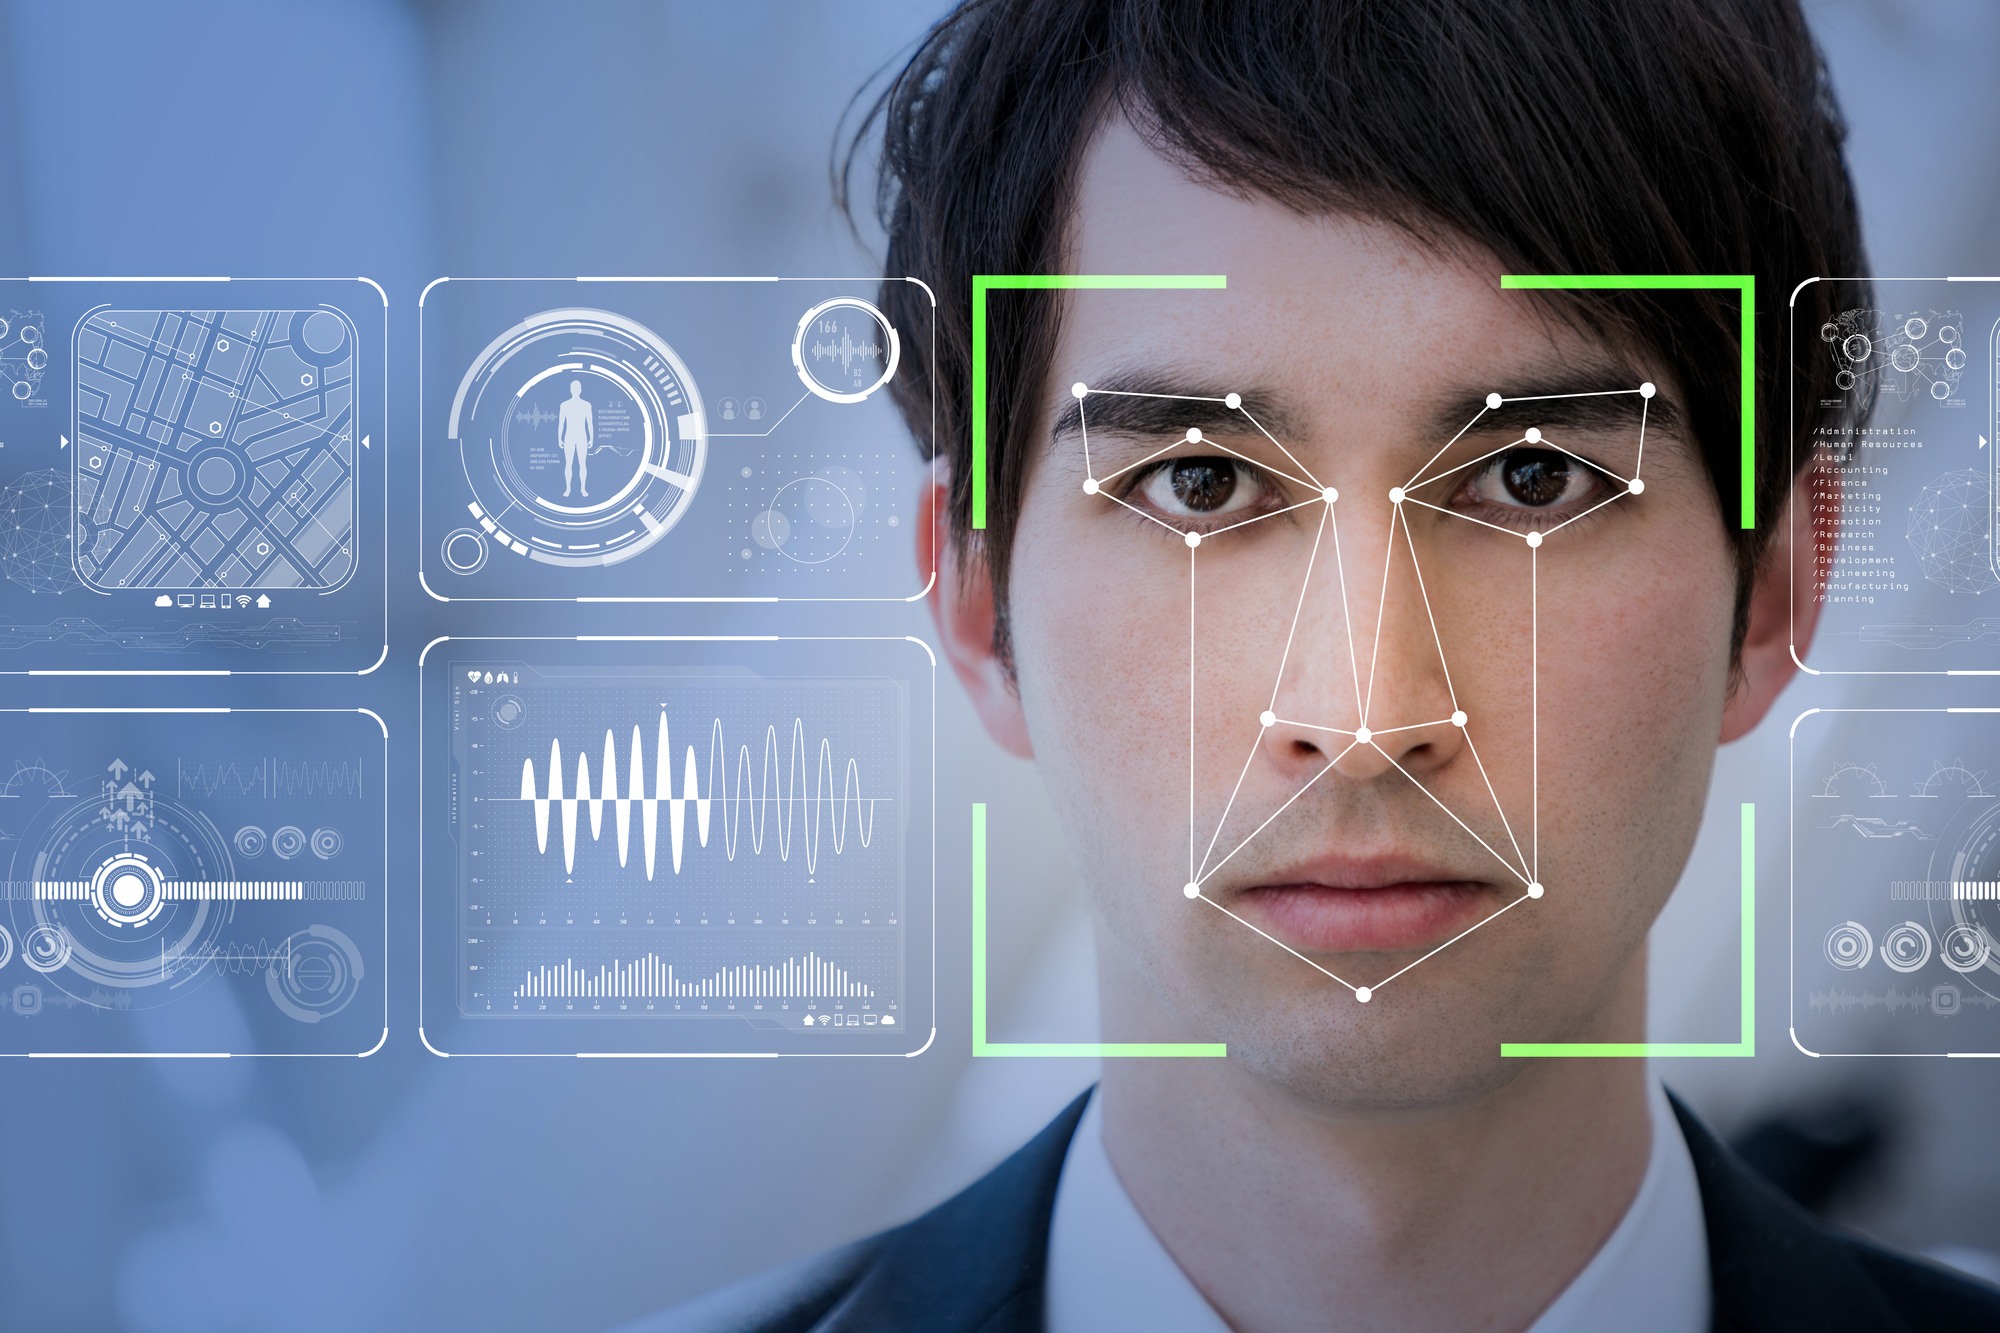 The scary side of biometric security